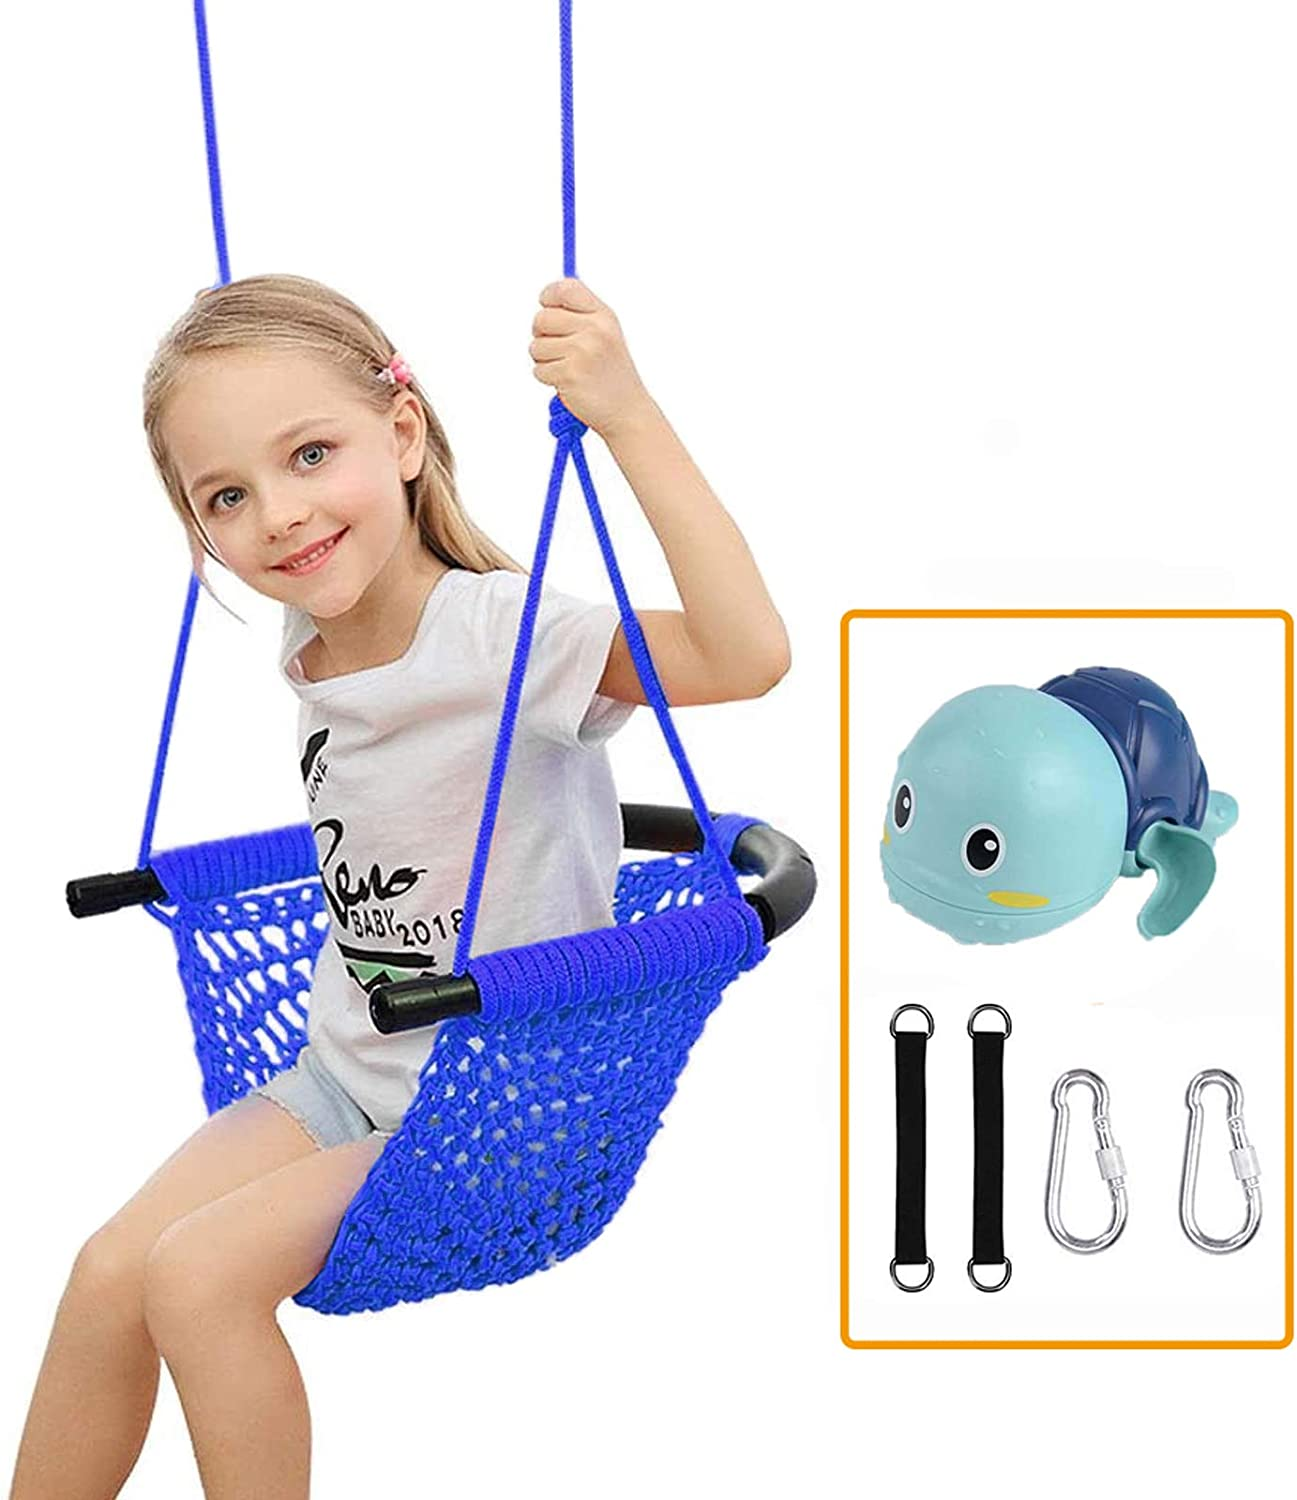 Kids Swing,Swing Seat Tree Heavy Duty Rope Play Secure Children Swing Set for Indoor/Outdoor/Playground/Home/Tree with Snap Hooks and Swing Straps,Suit for 2 to 12 Years (Blue)